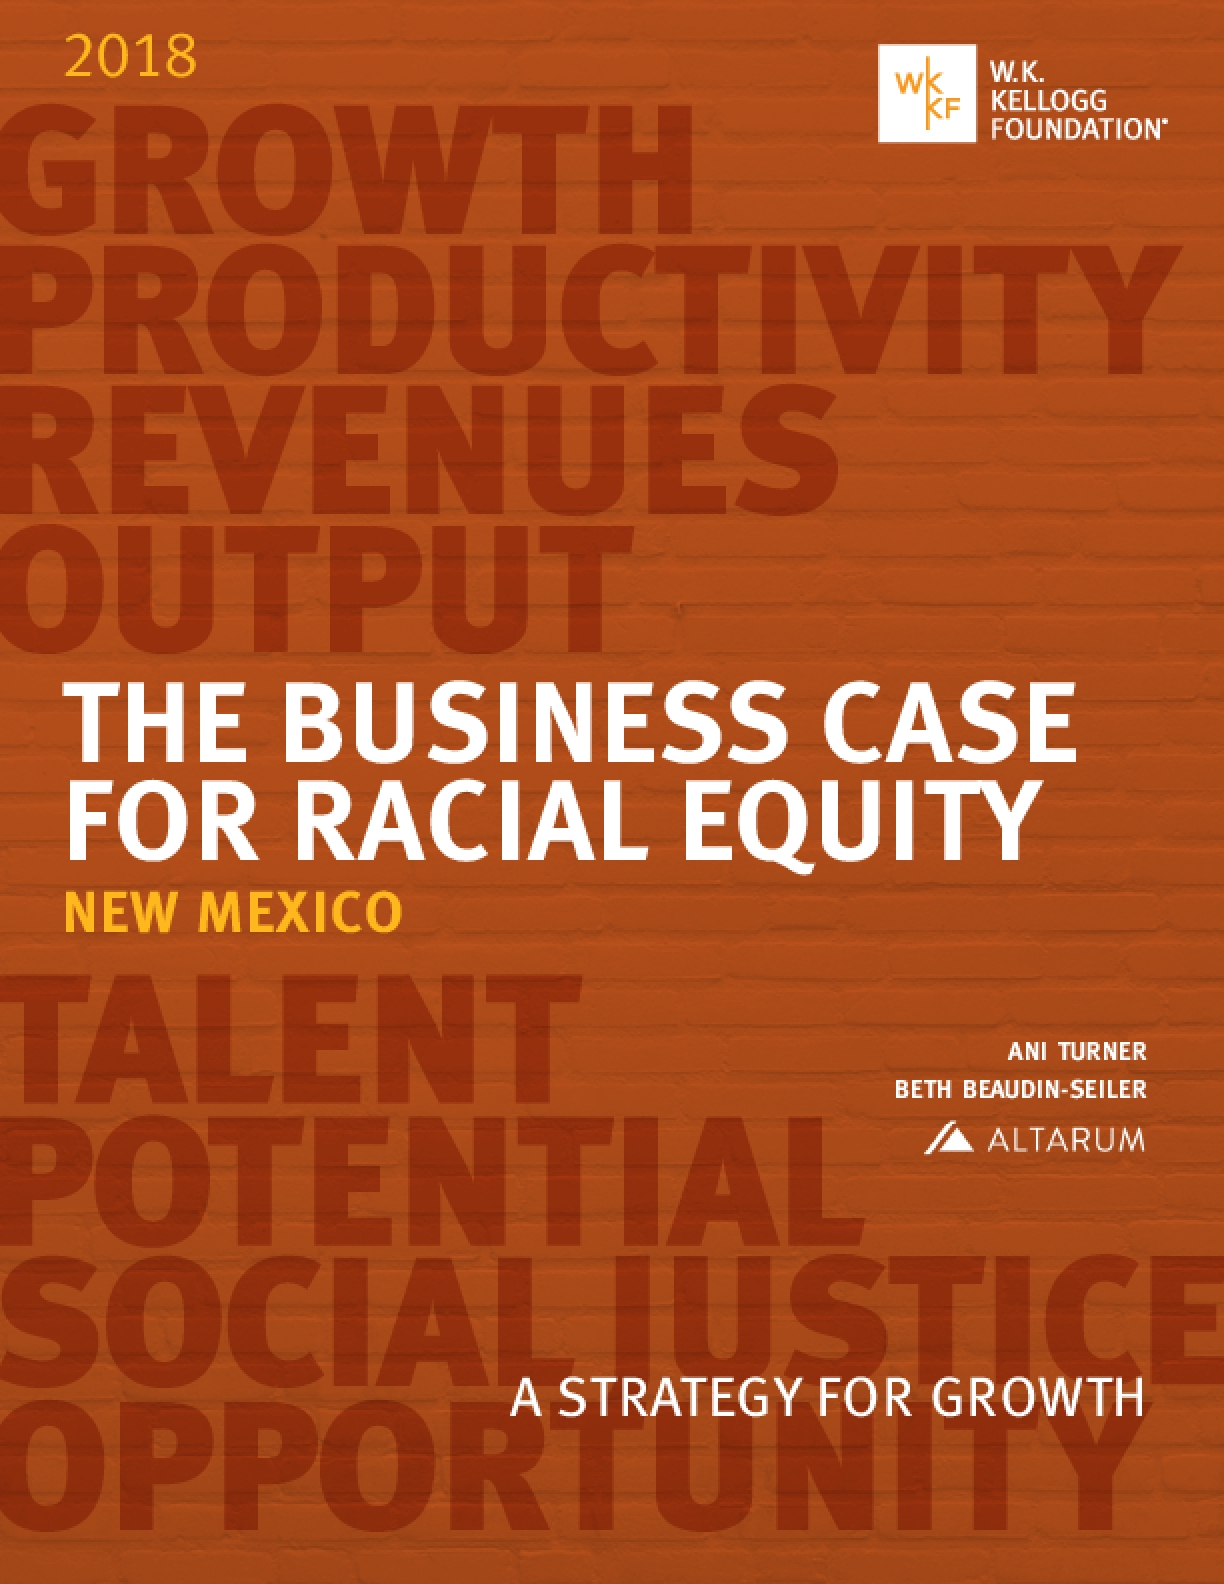 The Business Case for Racial Equity: New Mexico